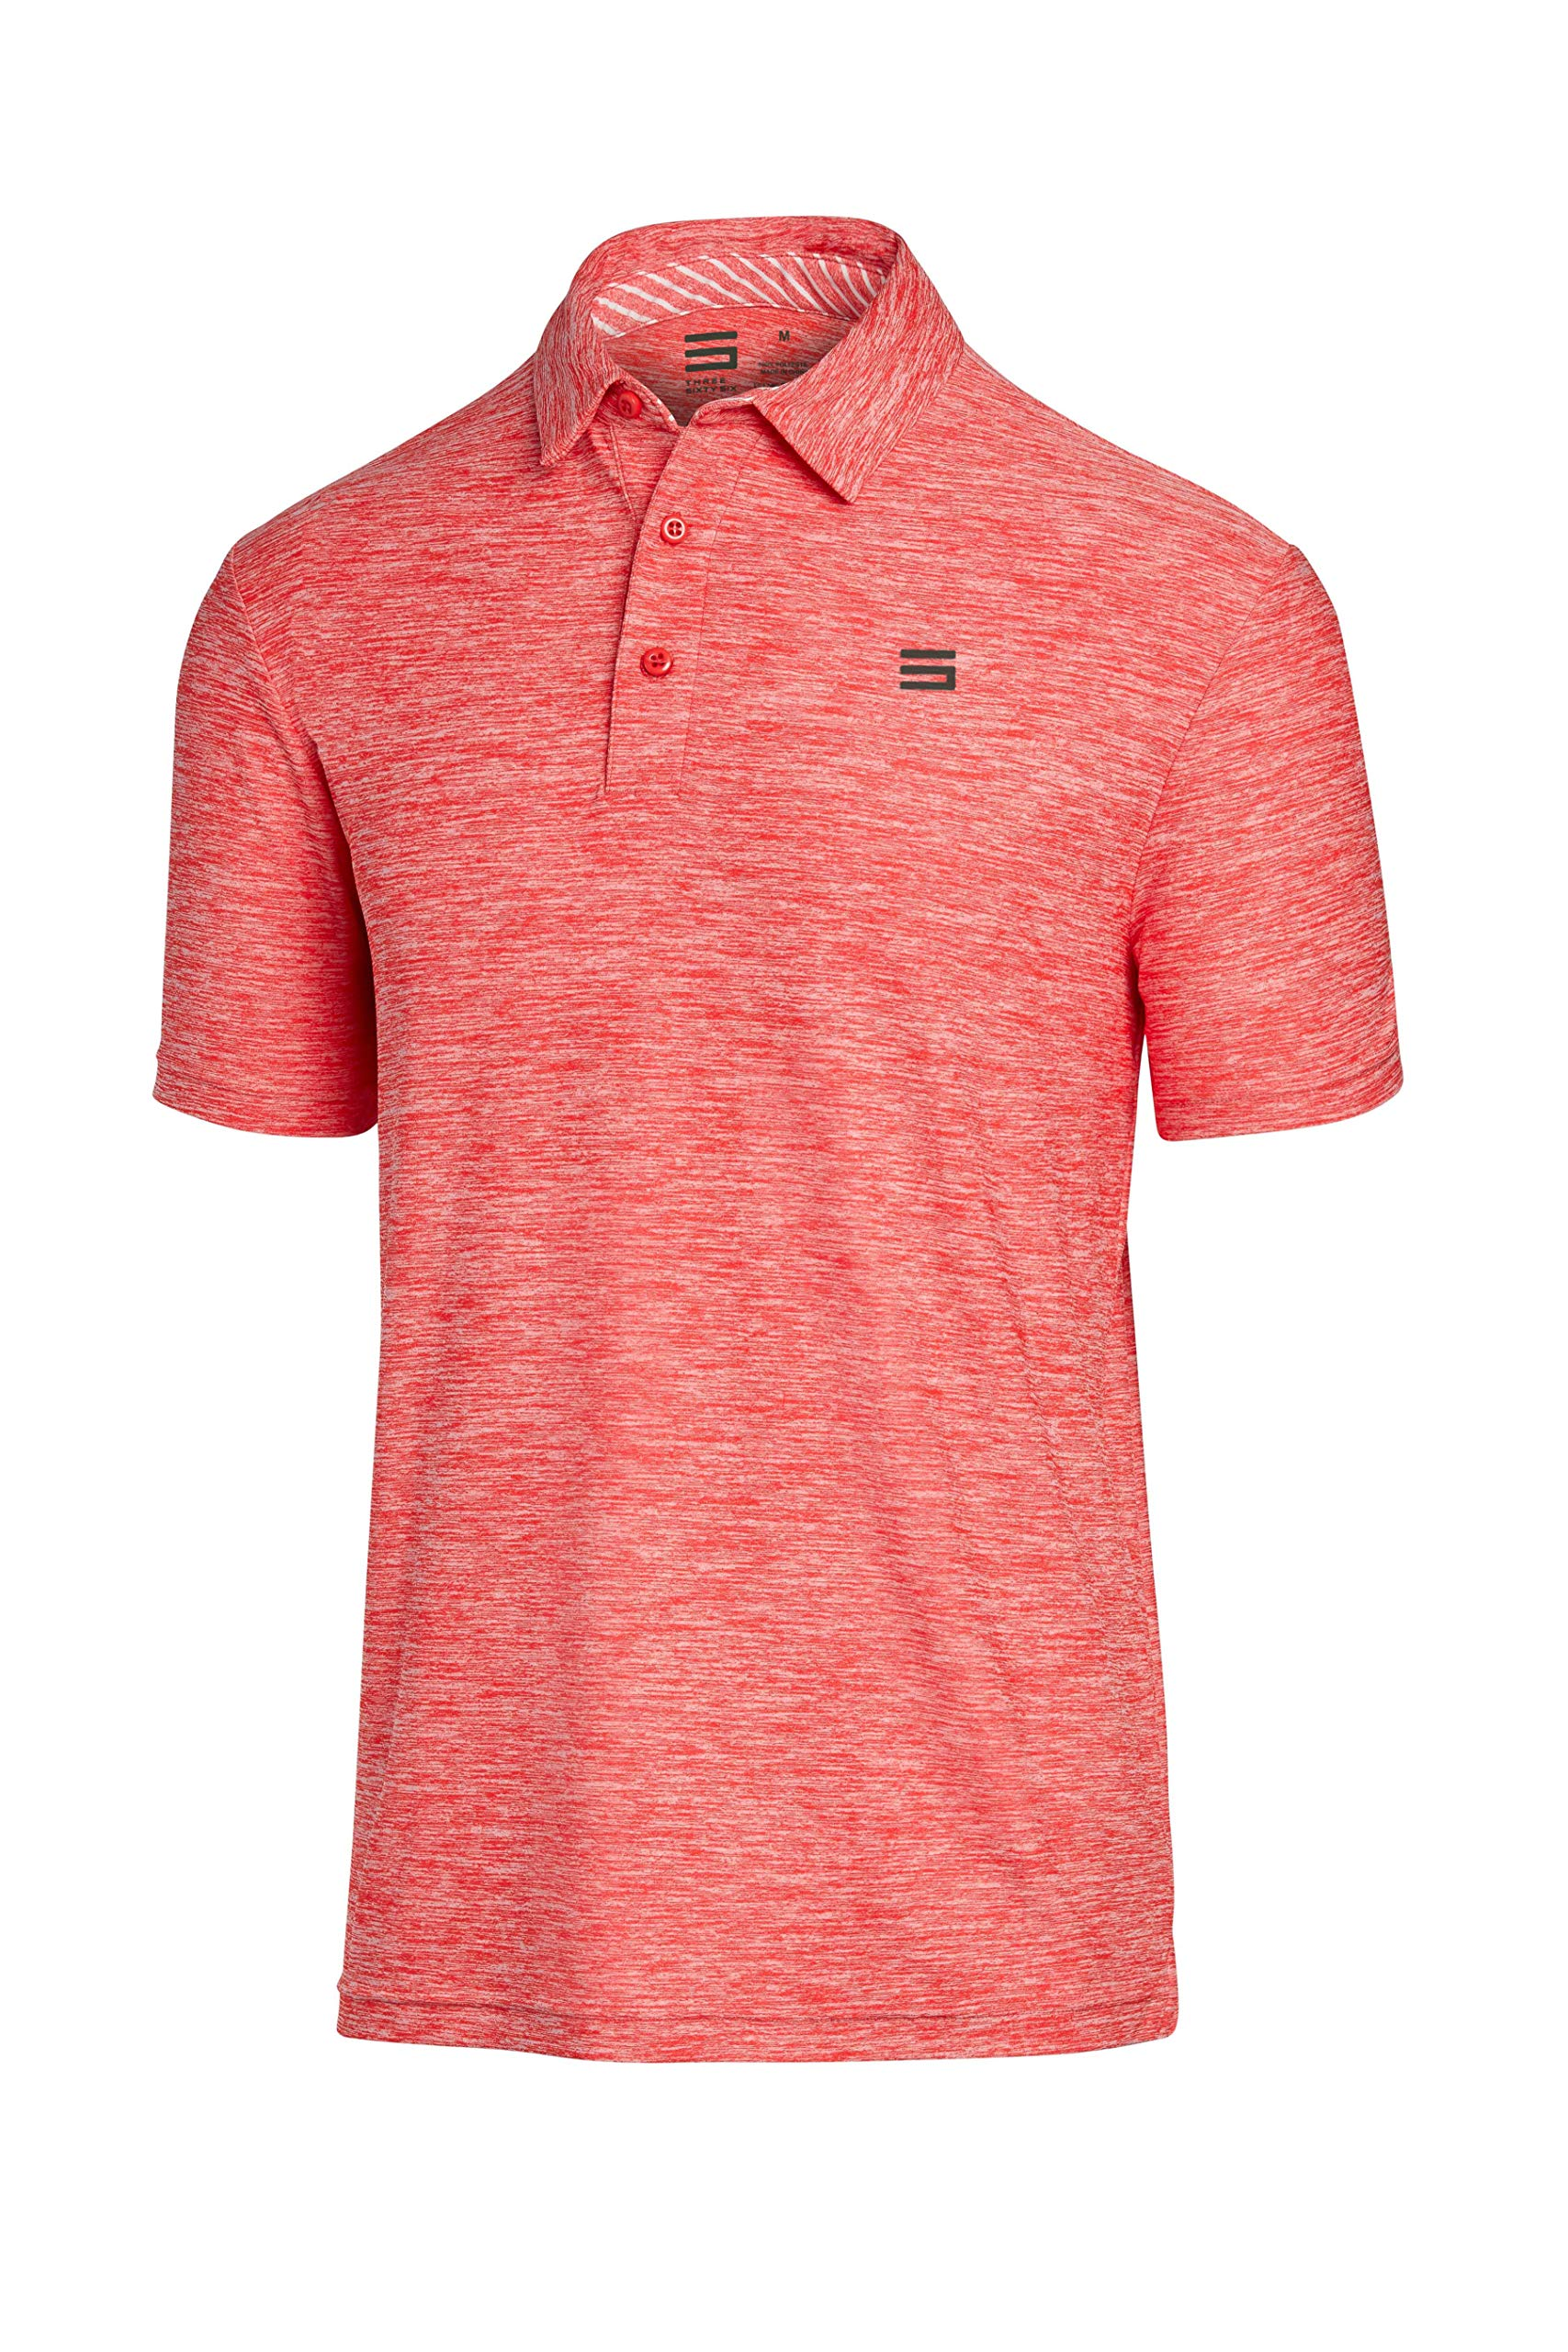 Three Sixty Six Golf Shirts for Men - Dry Fit Short-Sleeve Polo, Athletic Casual Collared T-Shirt by Three Sixty Six